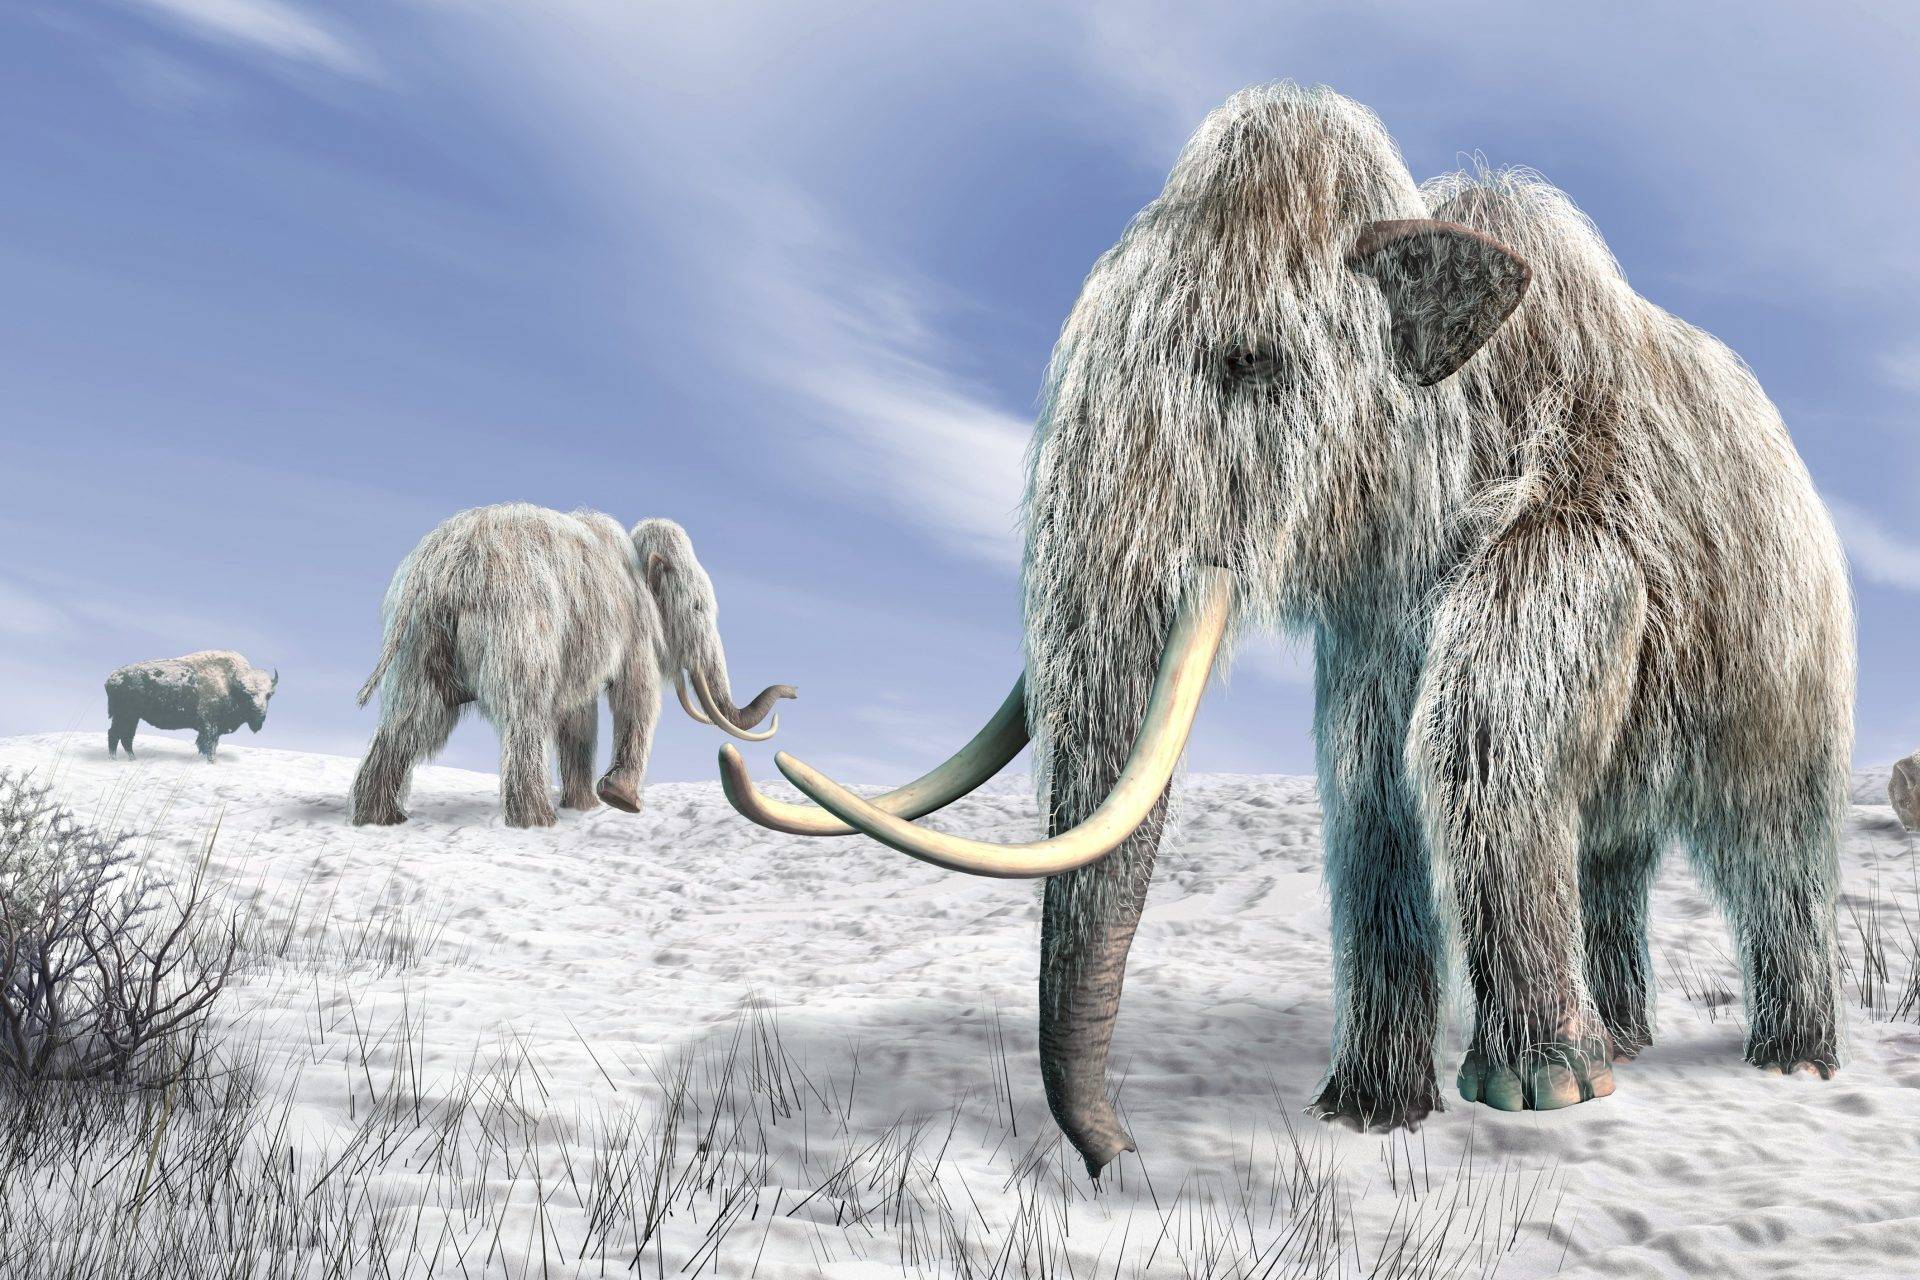 Bringing back the mammoth: an exciting scientific project